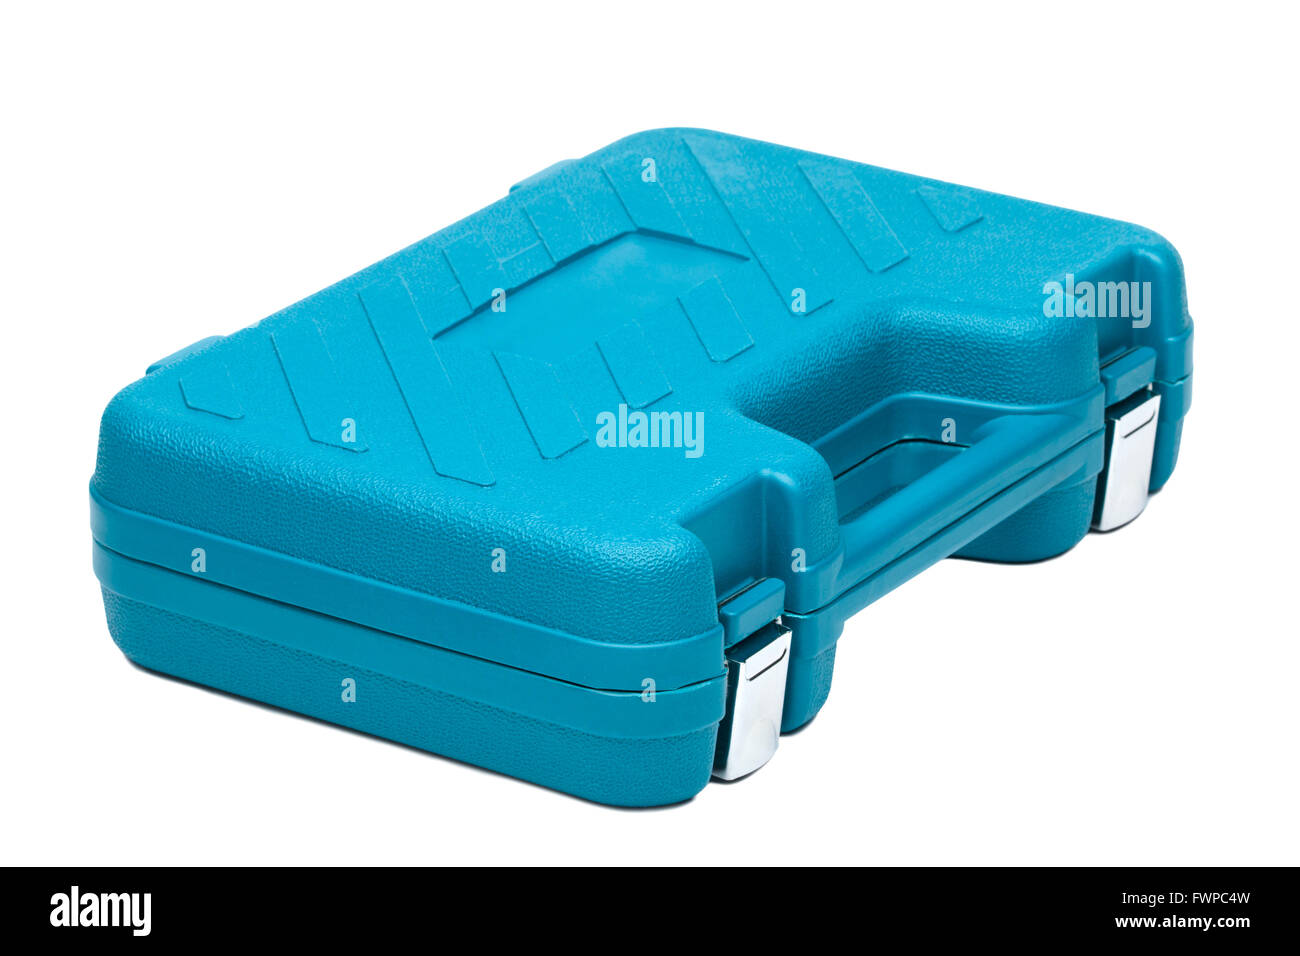 Blue toolbox isolated over white background - Stock Image